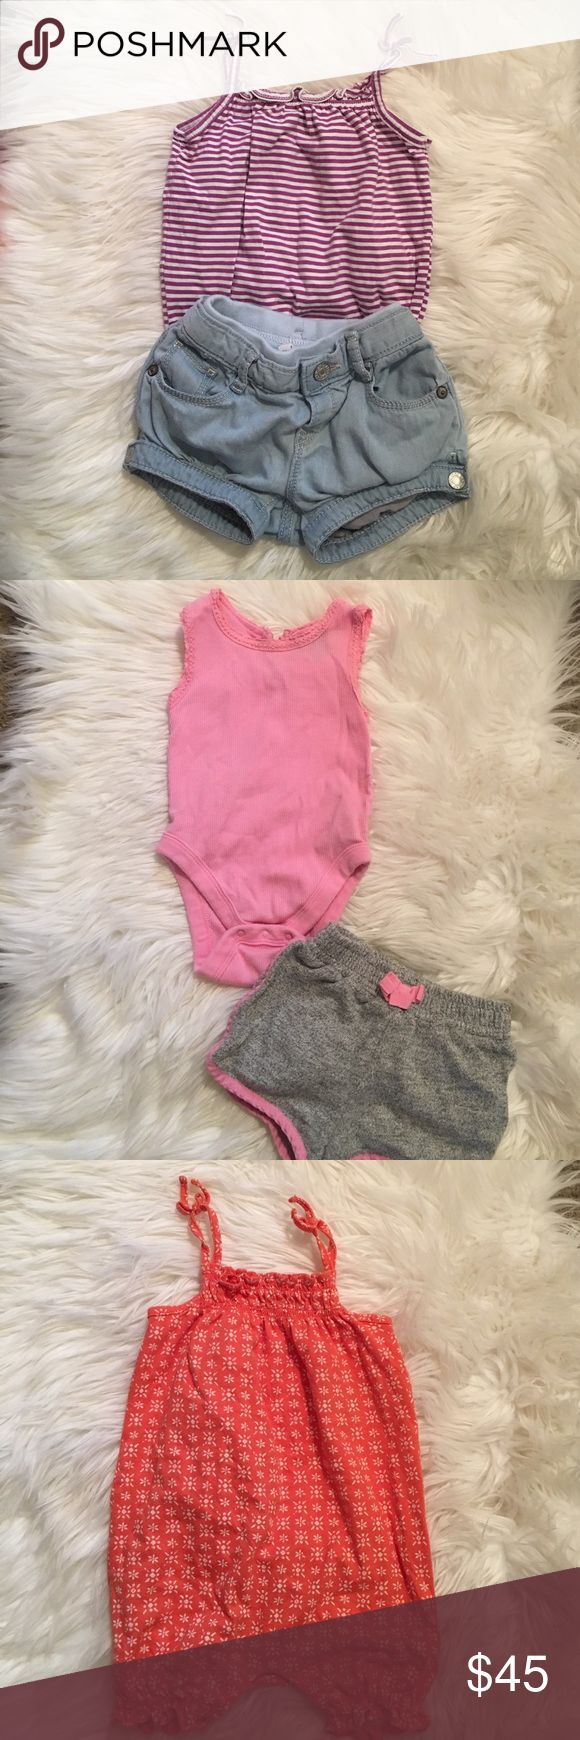 Baby girl gap bundle🌸11 pieces 4 pairs of 3-6 month gap shorts-3 snap tank tops gap 3-6 months- orange jumper 6-9 months gap- navy blue jumper gap 3-6 months--- bonus denim & stars dress with bloomers carter's 6 months--- Oshkosh overall shorts 6 months GAP Matching Sets